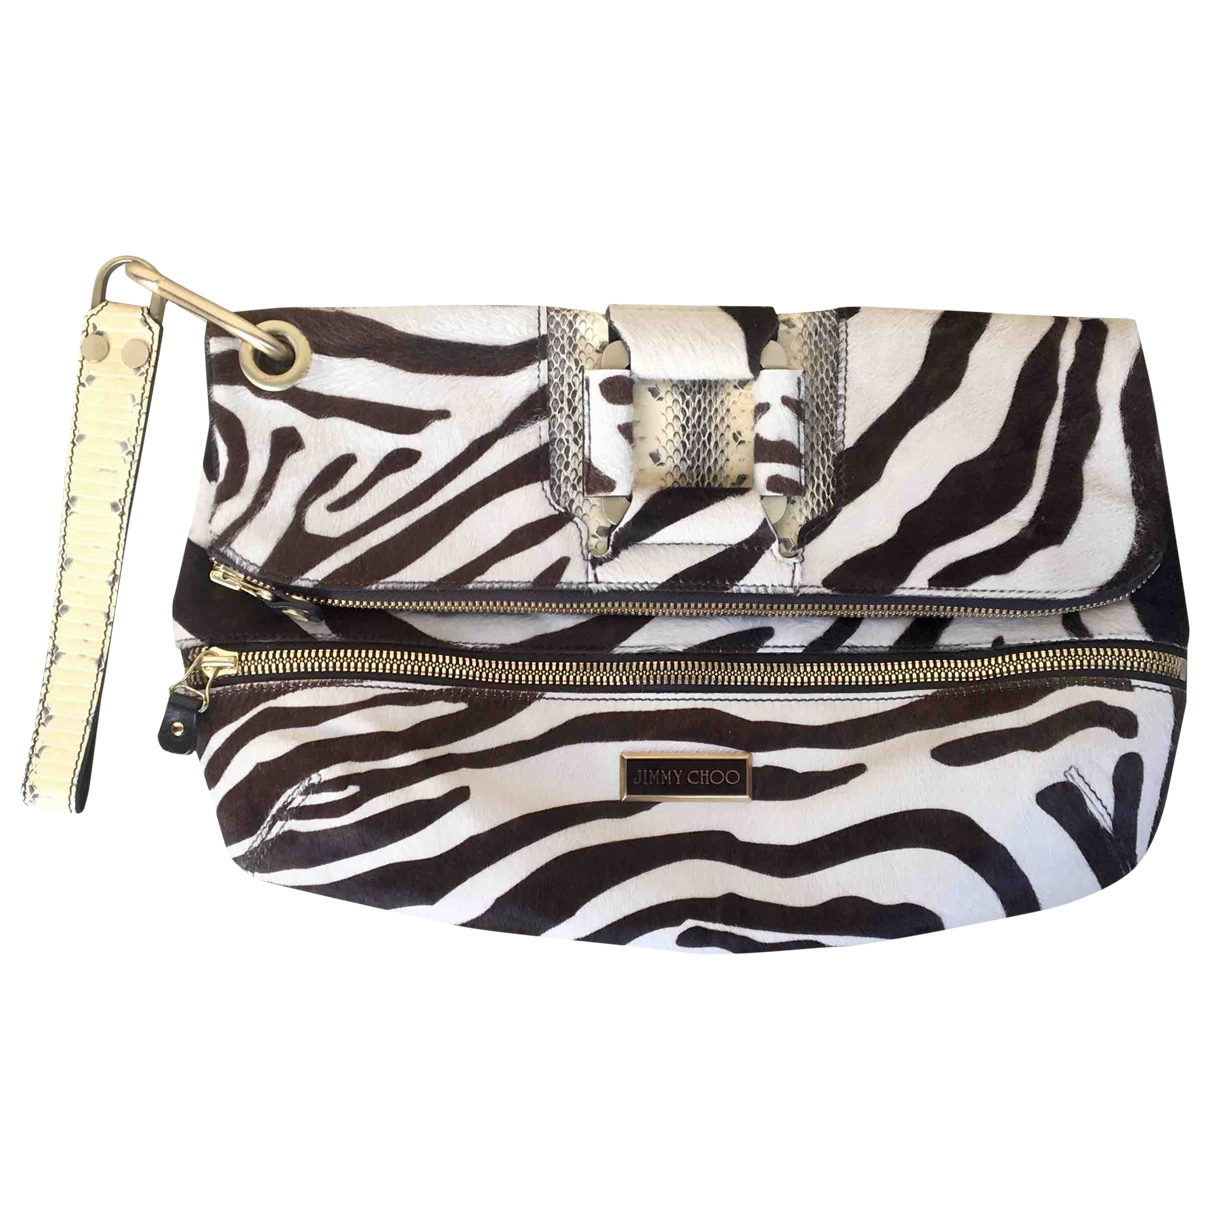 Jimmy Choo \N Multicolour Pony-style calfskin Clutch bag for Women \N